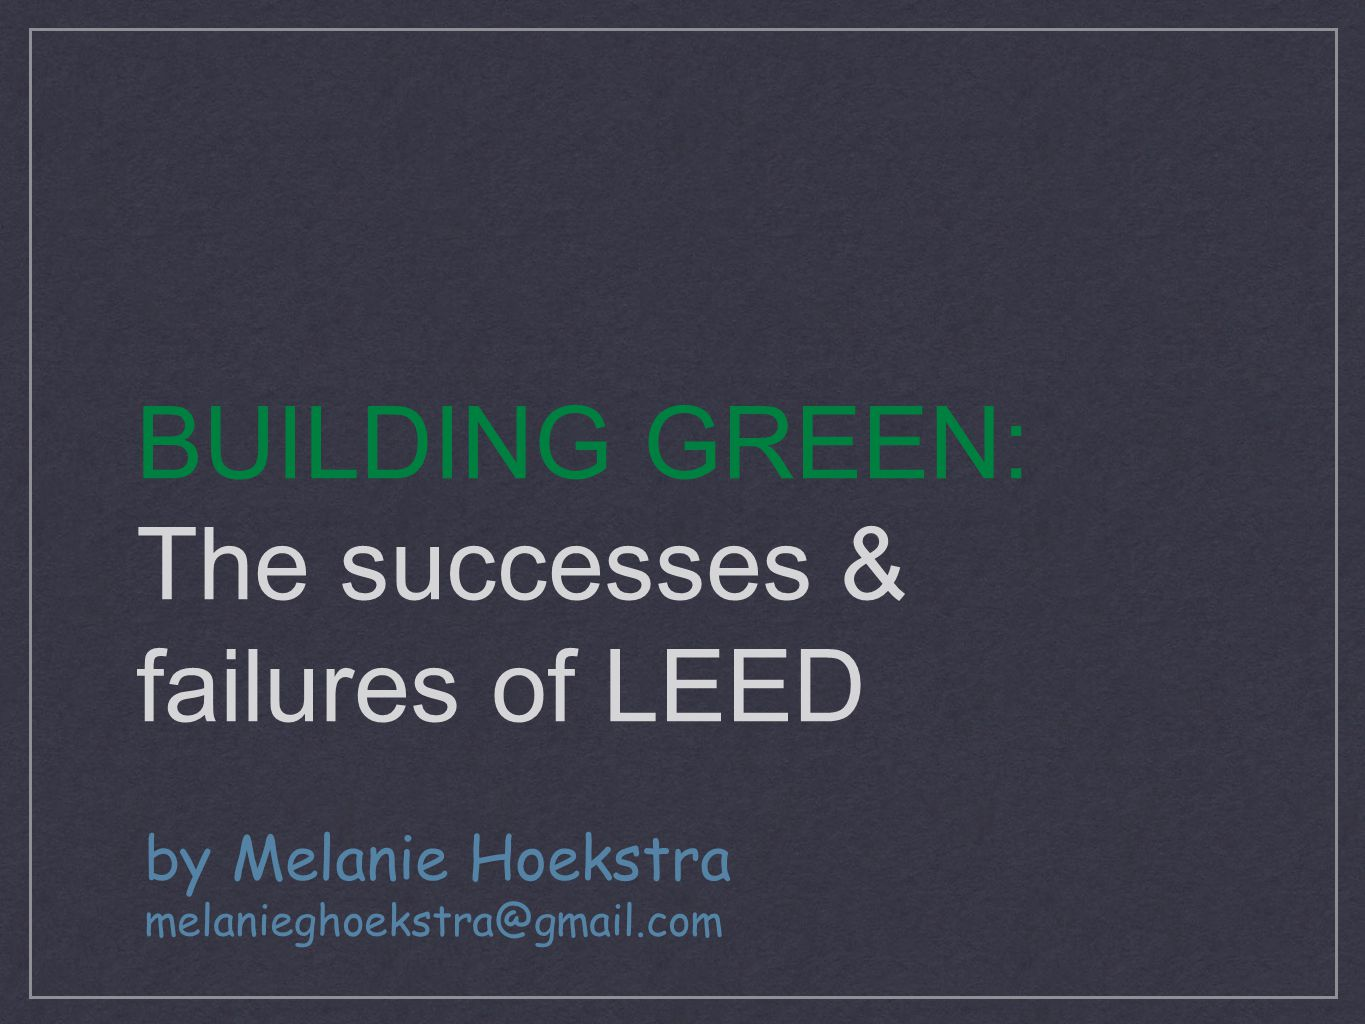 BUILDING GREEN: The successes & failures of LEED